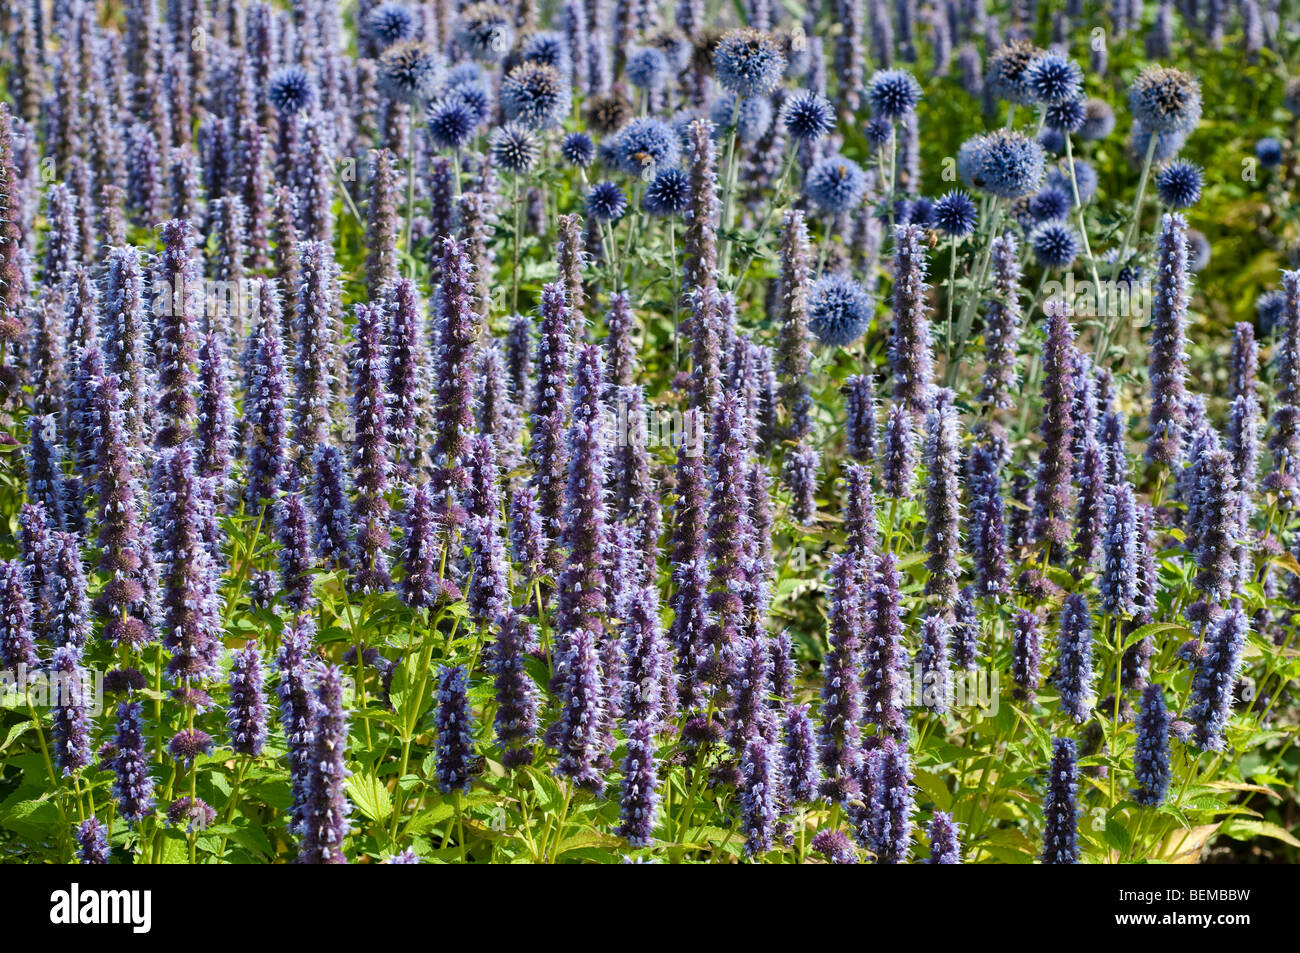 Agastache BLUE FORTUNE and blue globes - Stock Image